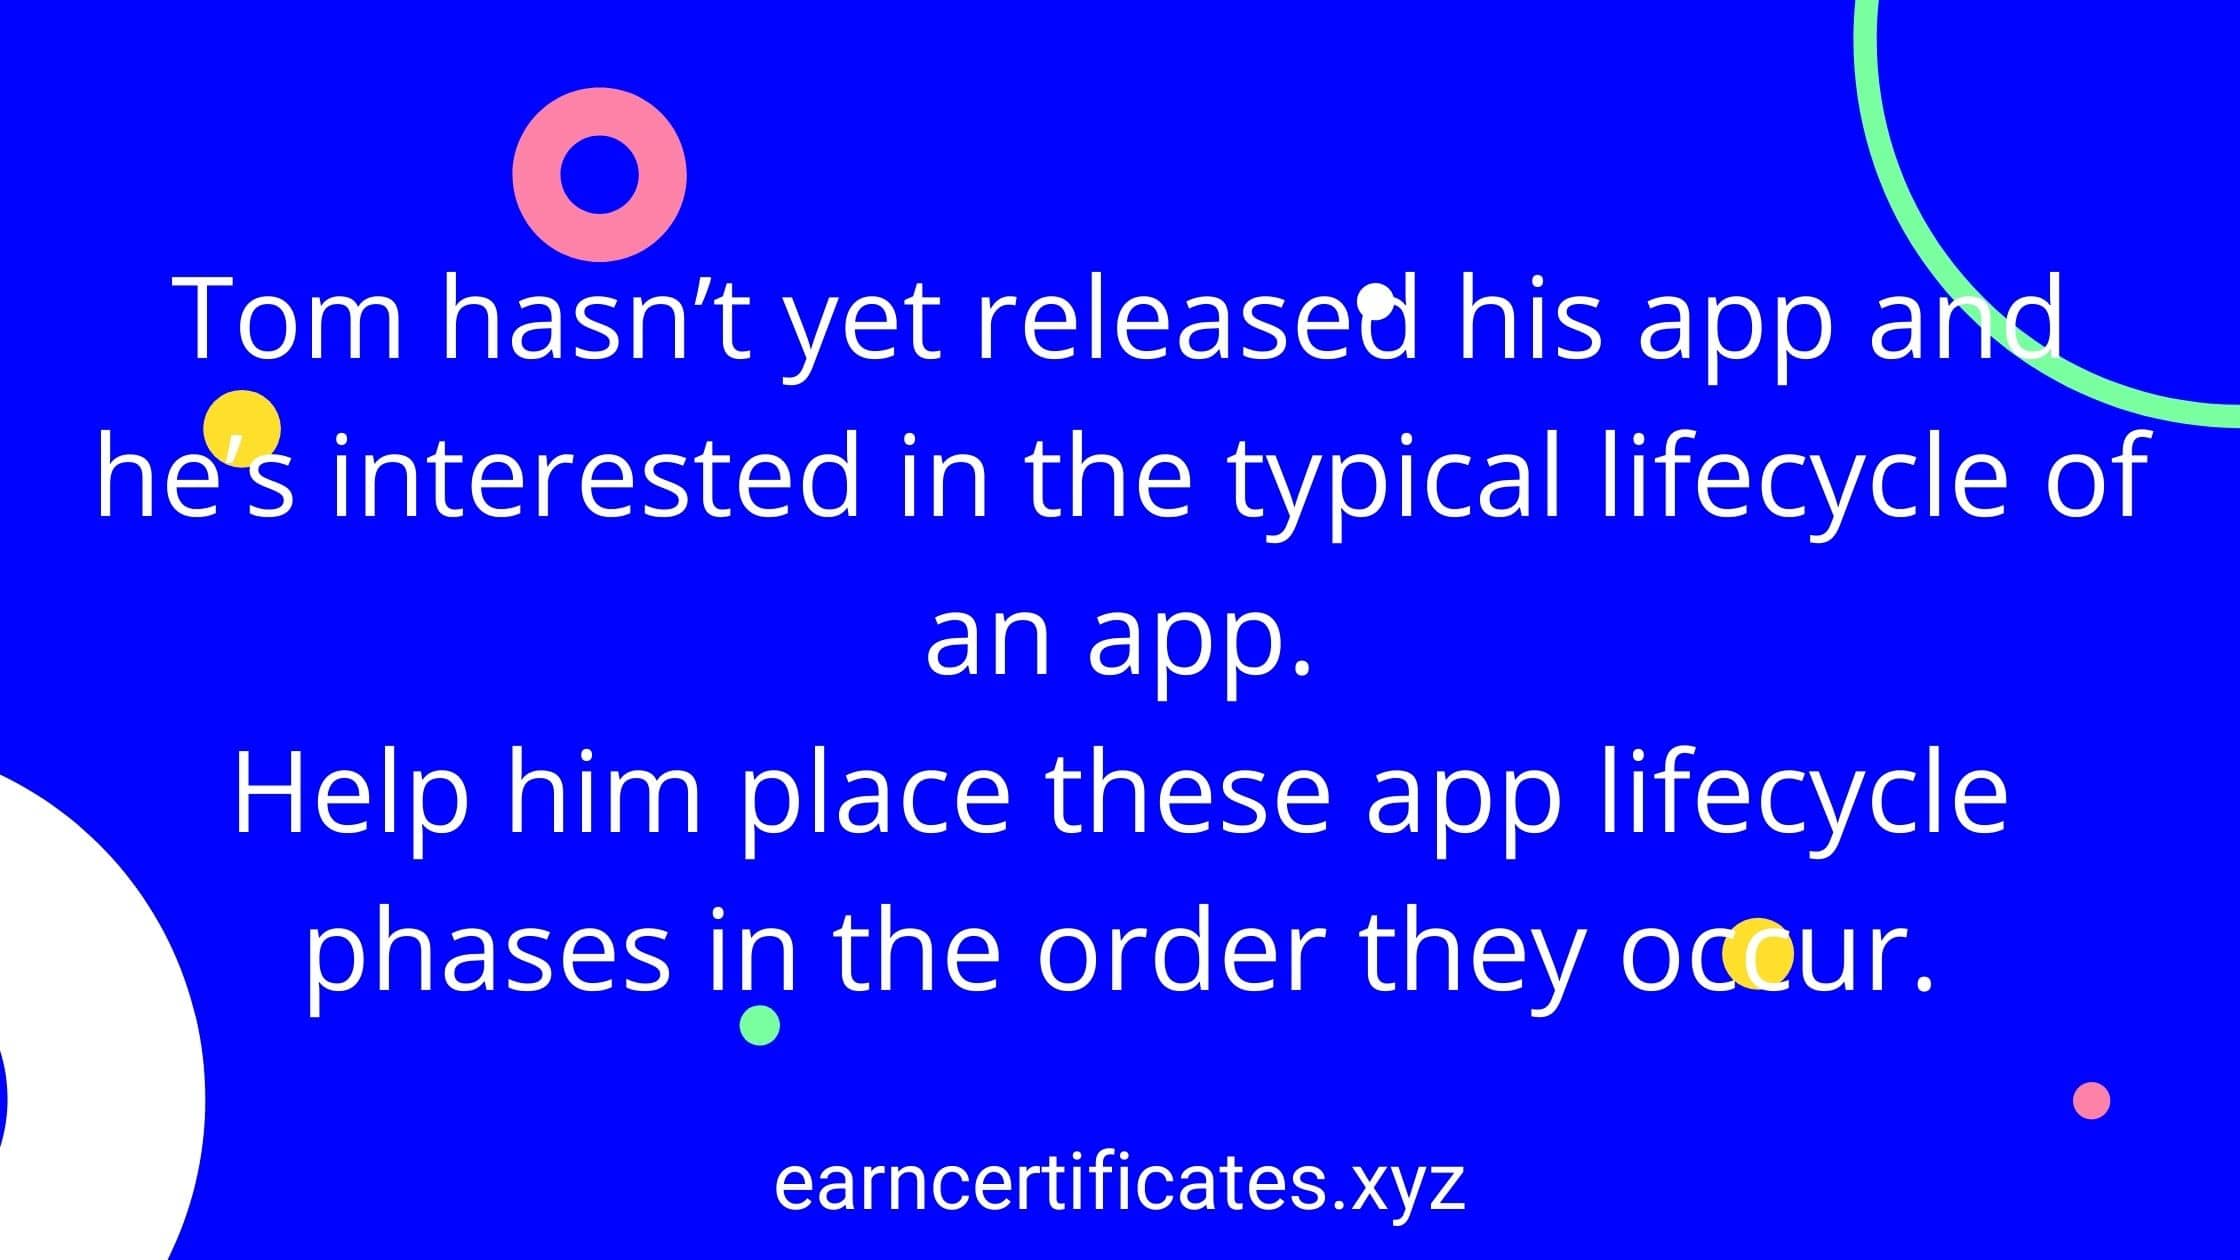 Tom hasn't yet released his app and he's interested in the typical lifecycle of an app. Help him place these app lifecycle phases in the order they occur.